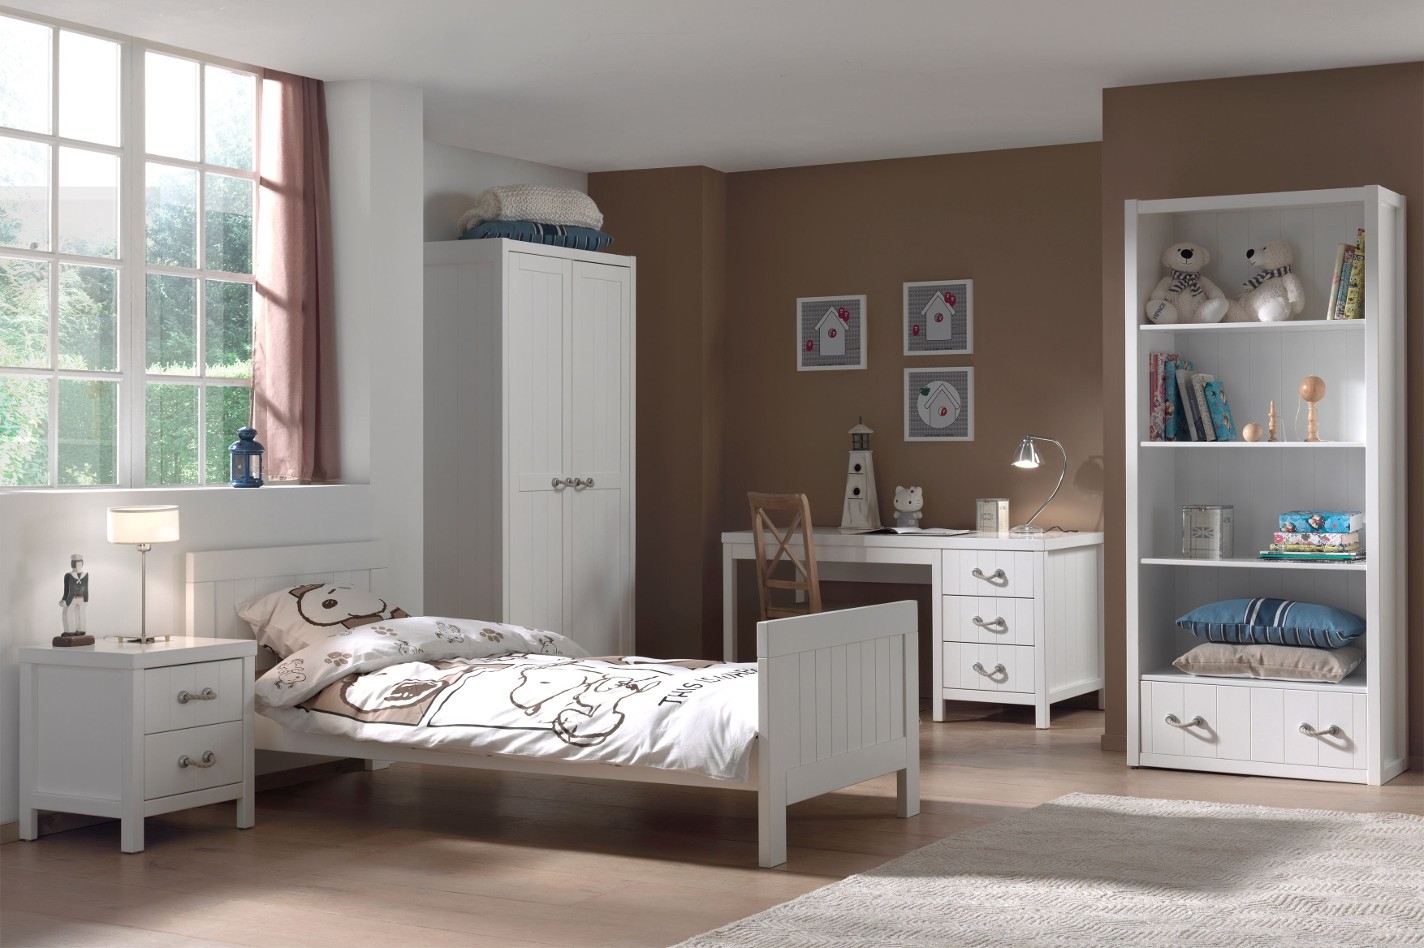 kleiderschrank lewis 2 t rig wei kinder jugendzimmer kleiderschr nke. Black Bedroom Furniture Sets. Home Design Ideas